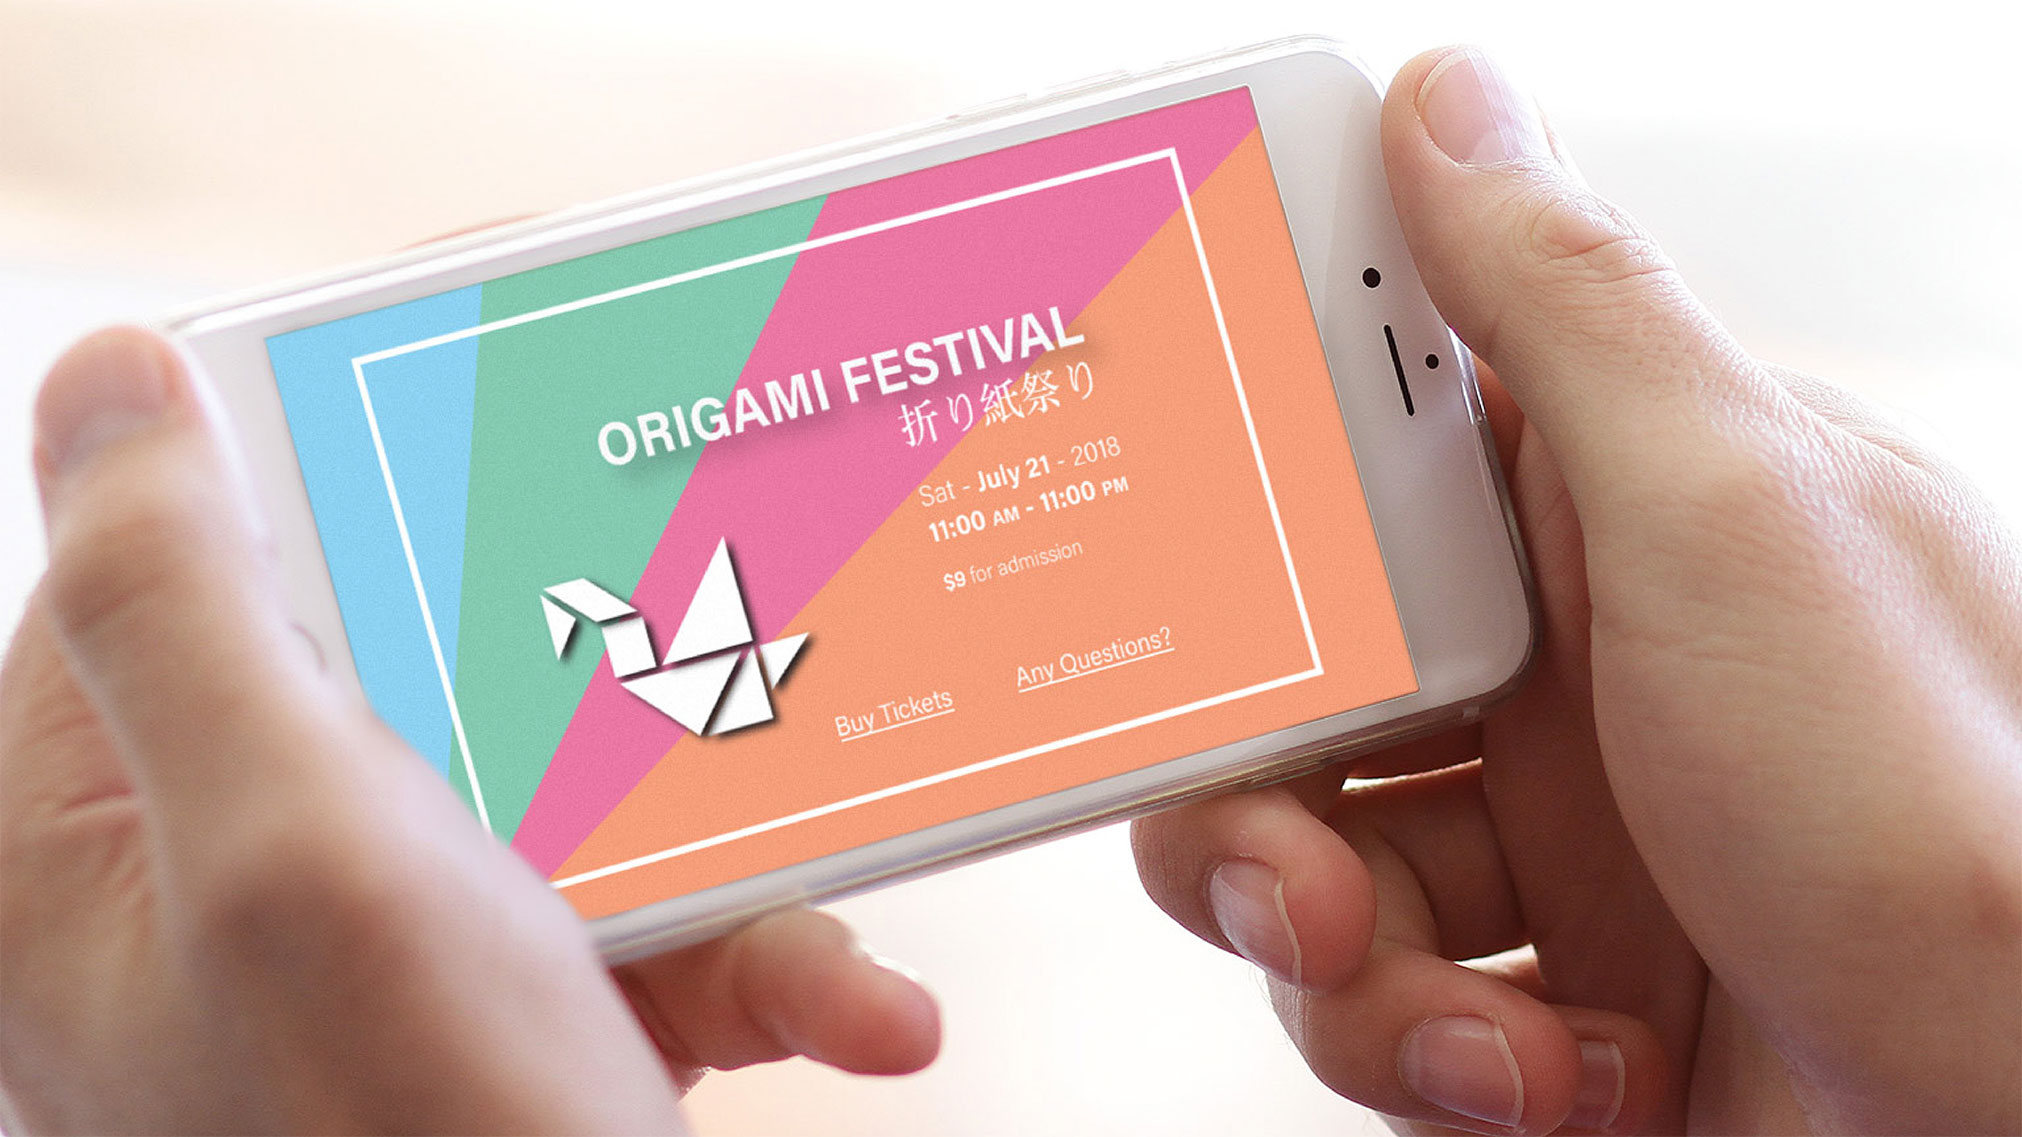 To bring this event brand to life, I created a visual identity that promotes Origami's ancient art. My goal was to depict Japanese culture's simplicity and modern Western visual communication.